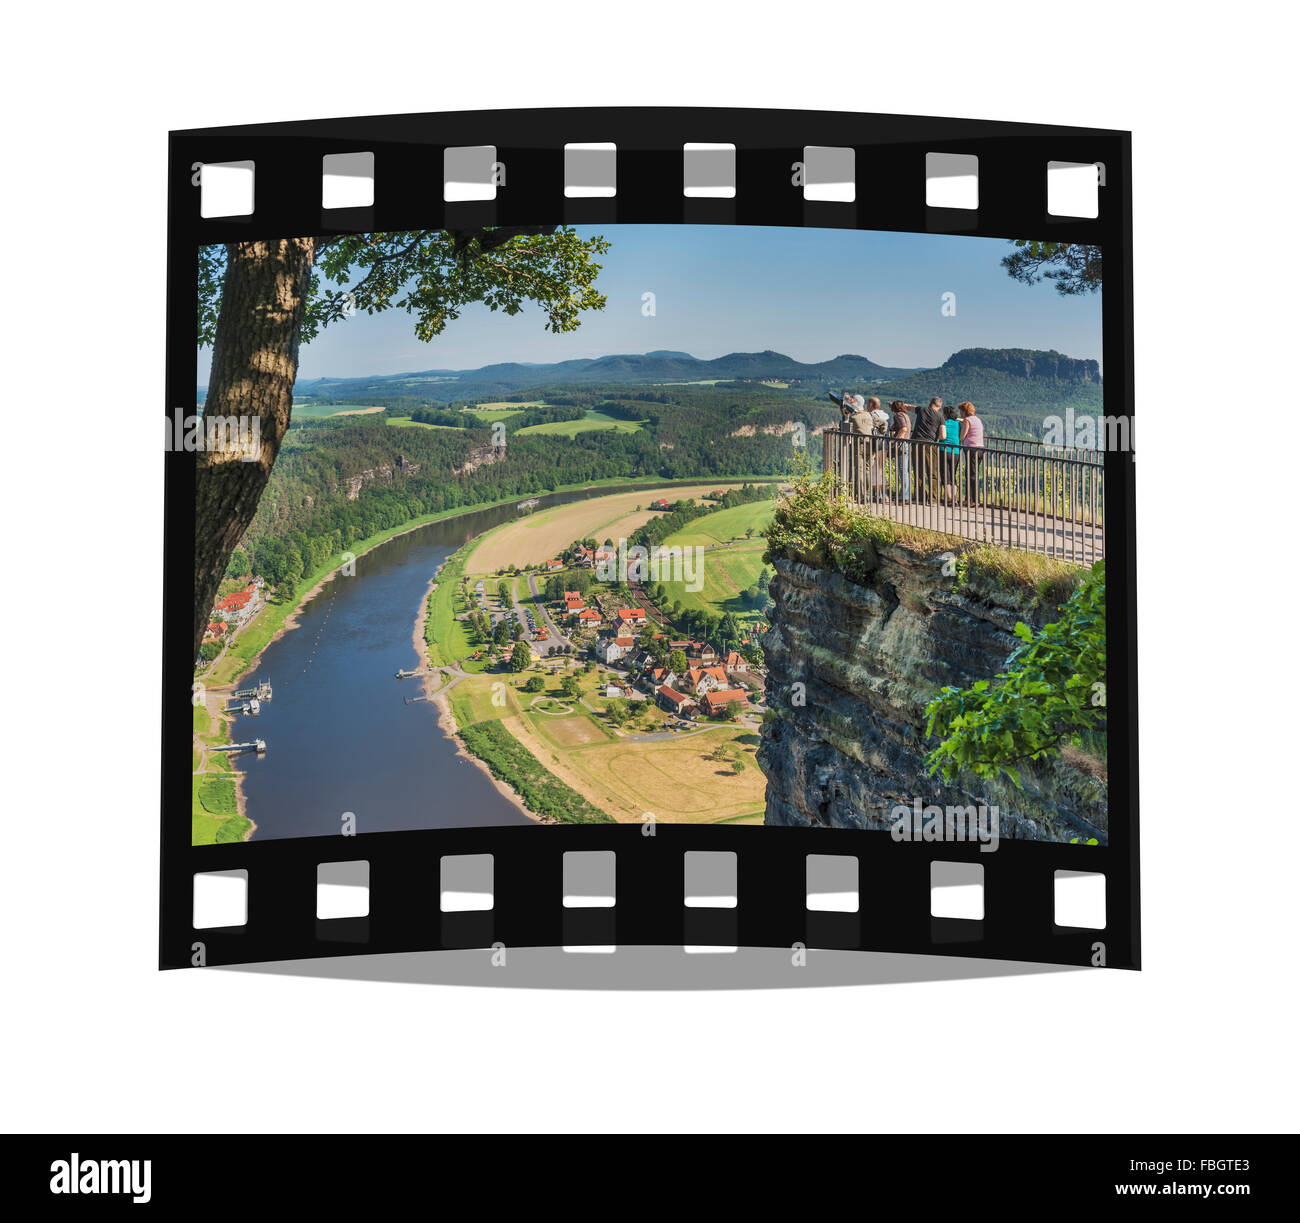 View from the Rock formation Bastei (Bastion) to health resort Rathen and the Elbe River, Saxony, Germany, Europe - Stock Image